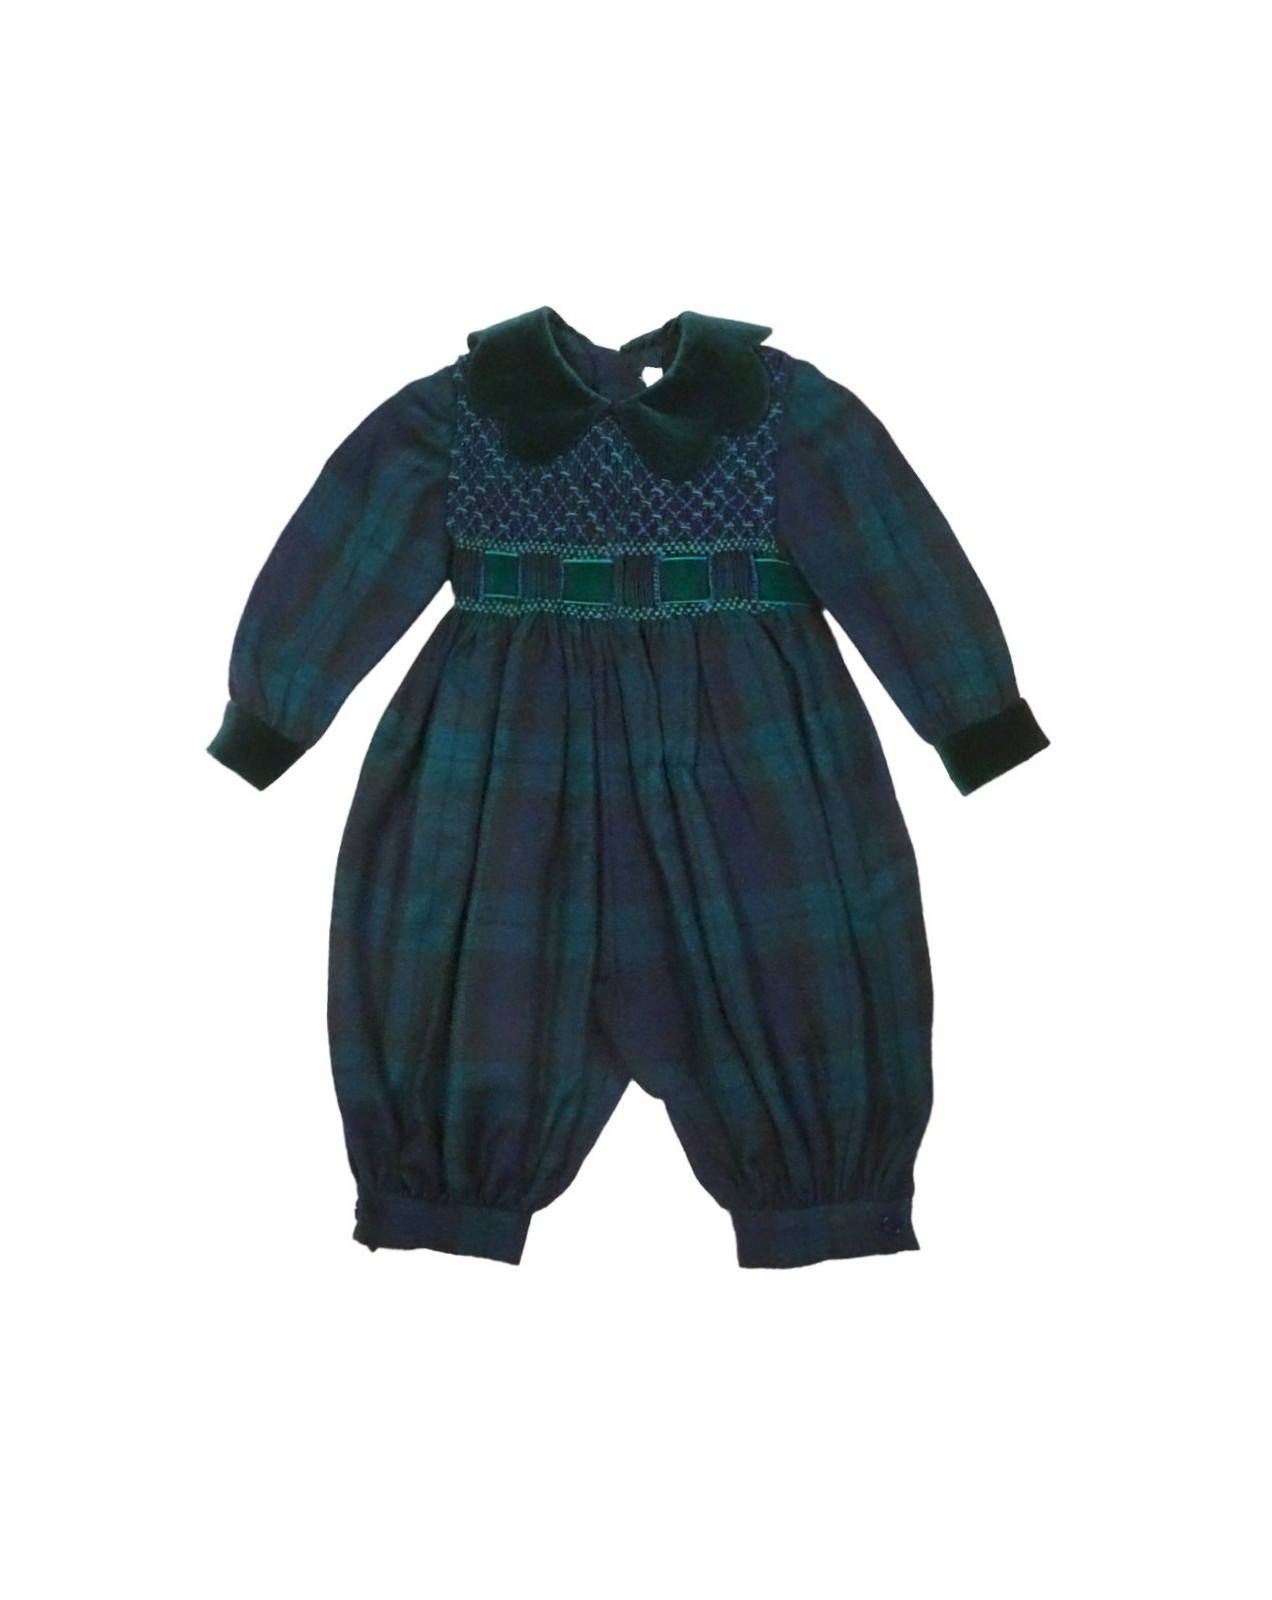 Plaid smocked baby romper Orchidea